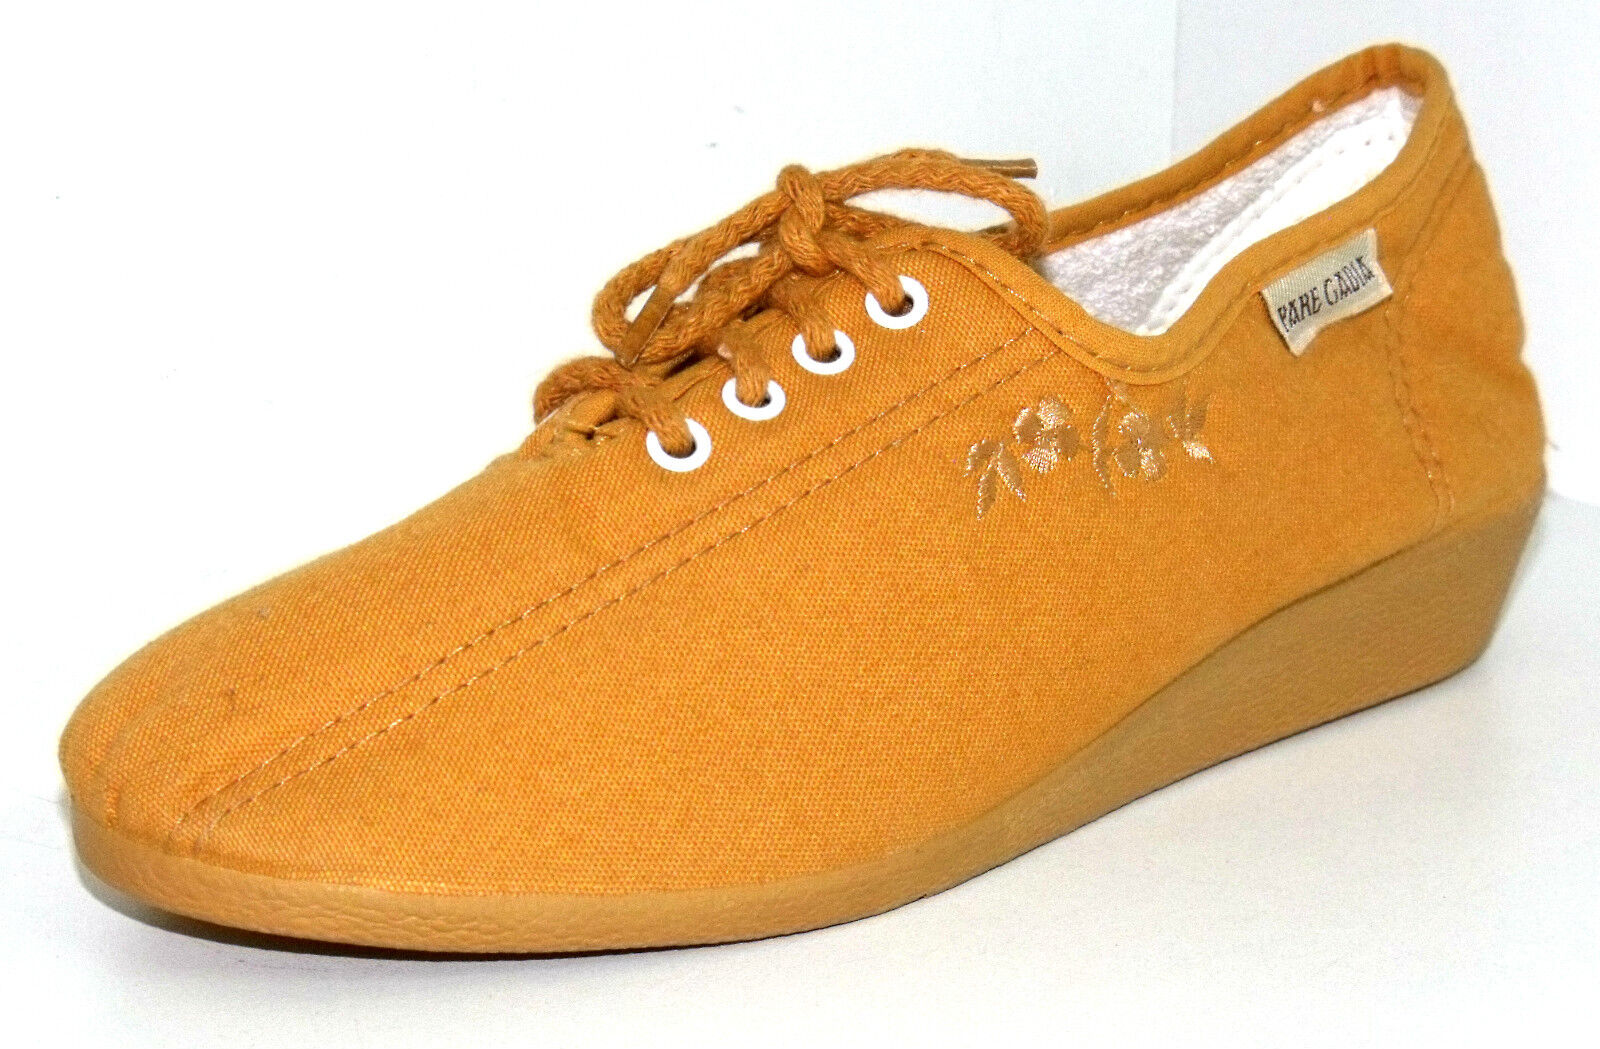 CHAUSSONS BASKETS COMPENSEES 35 A LACETS ocre toile jaune ocre LACETS BAYONA PARE GABIA NEUF e75e93